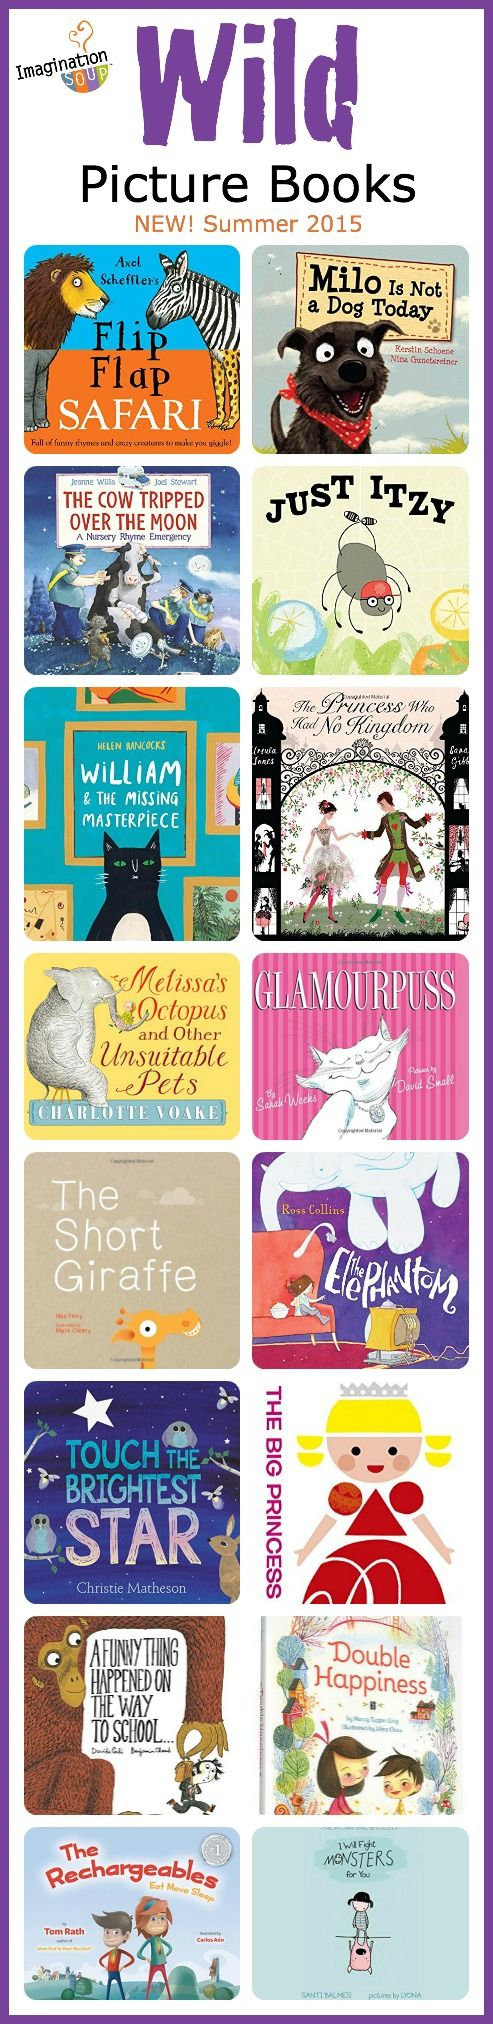 new picture books your kids will love, summer 2015